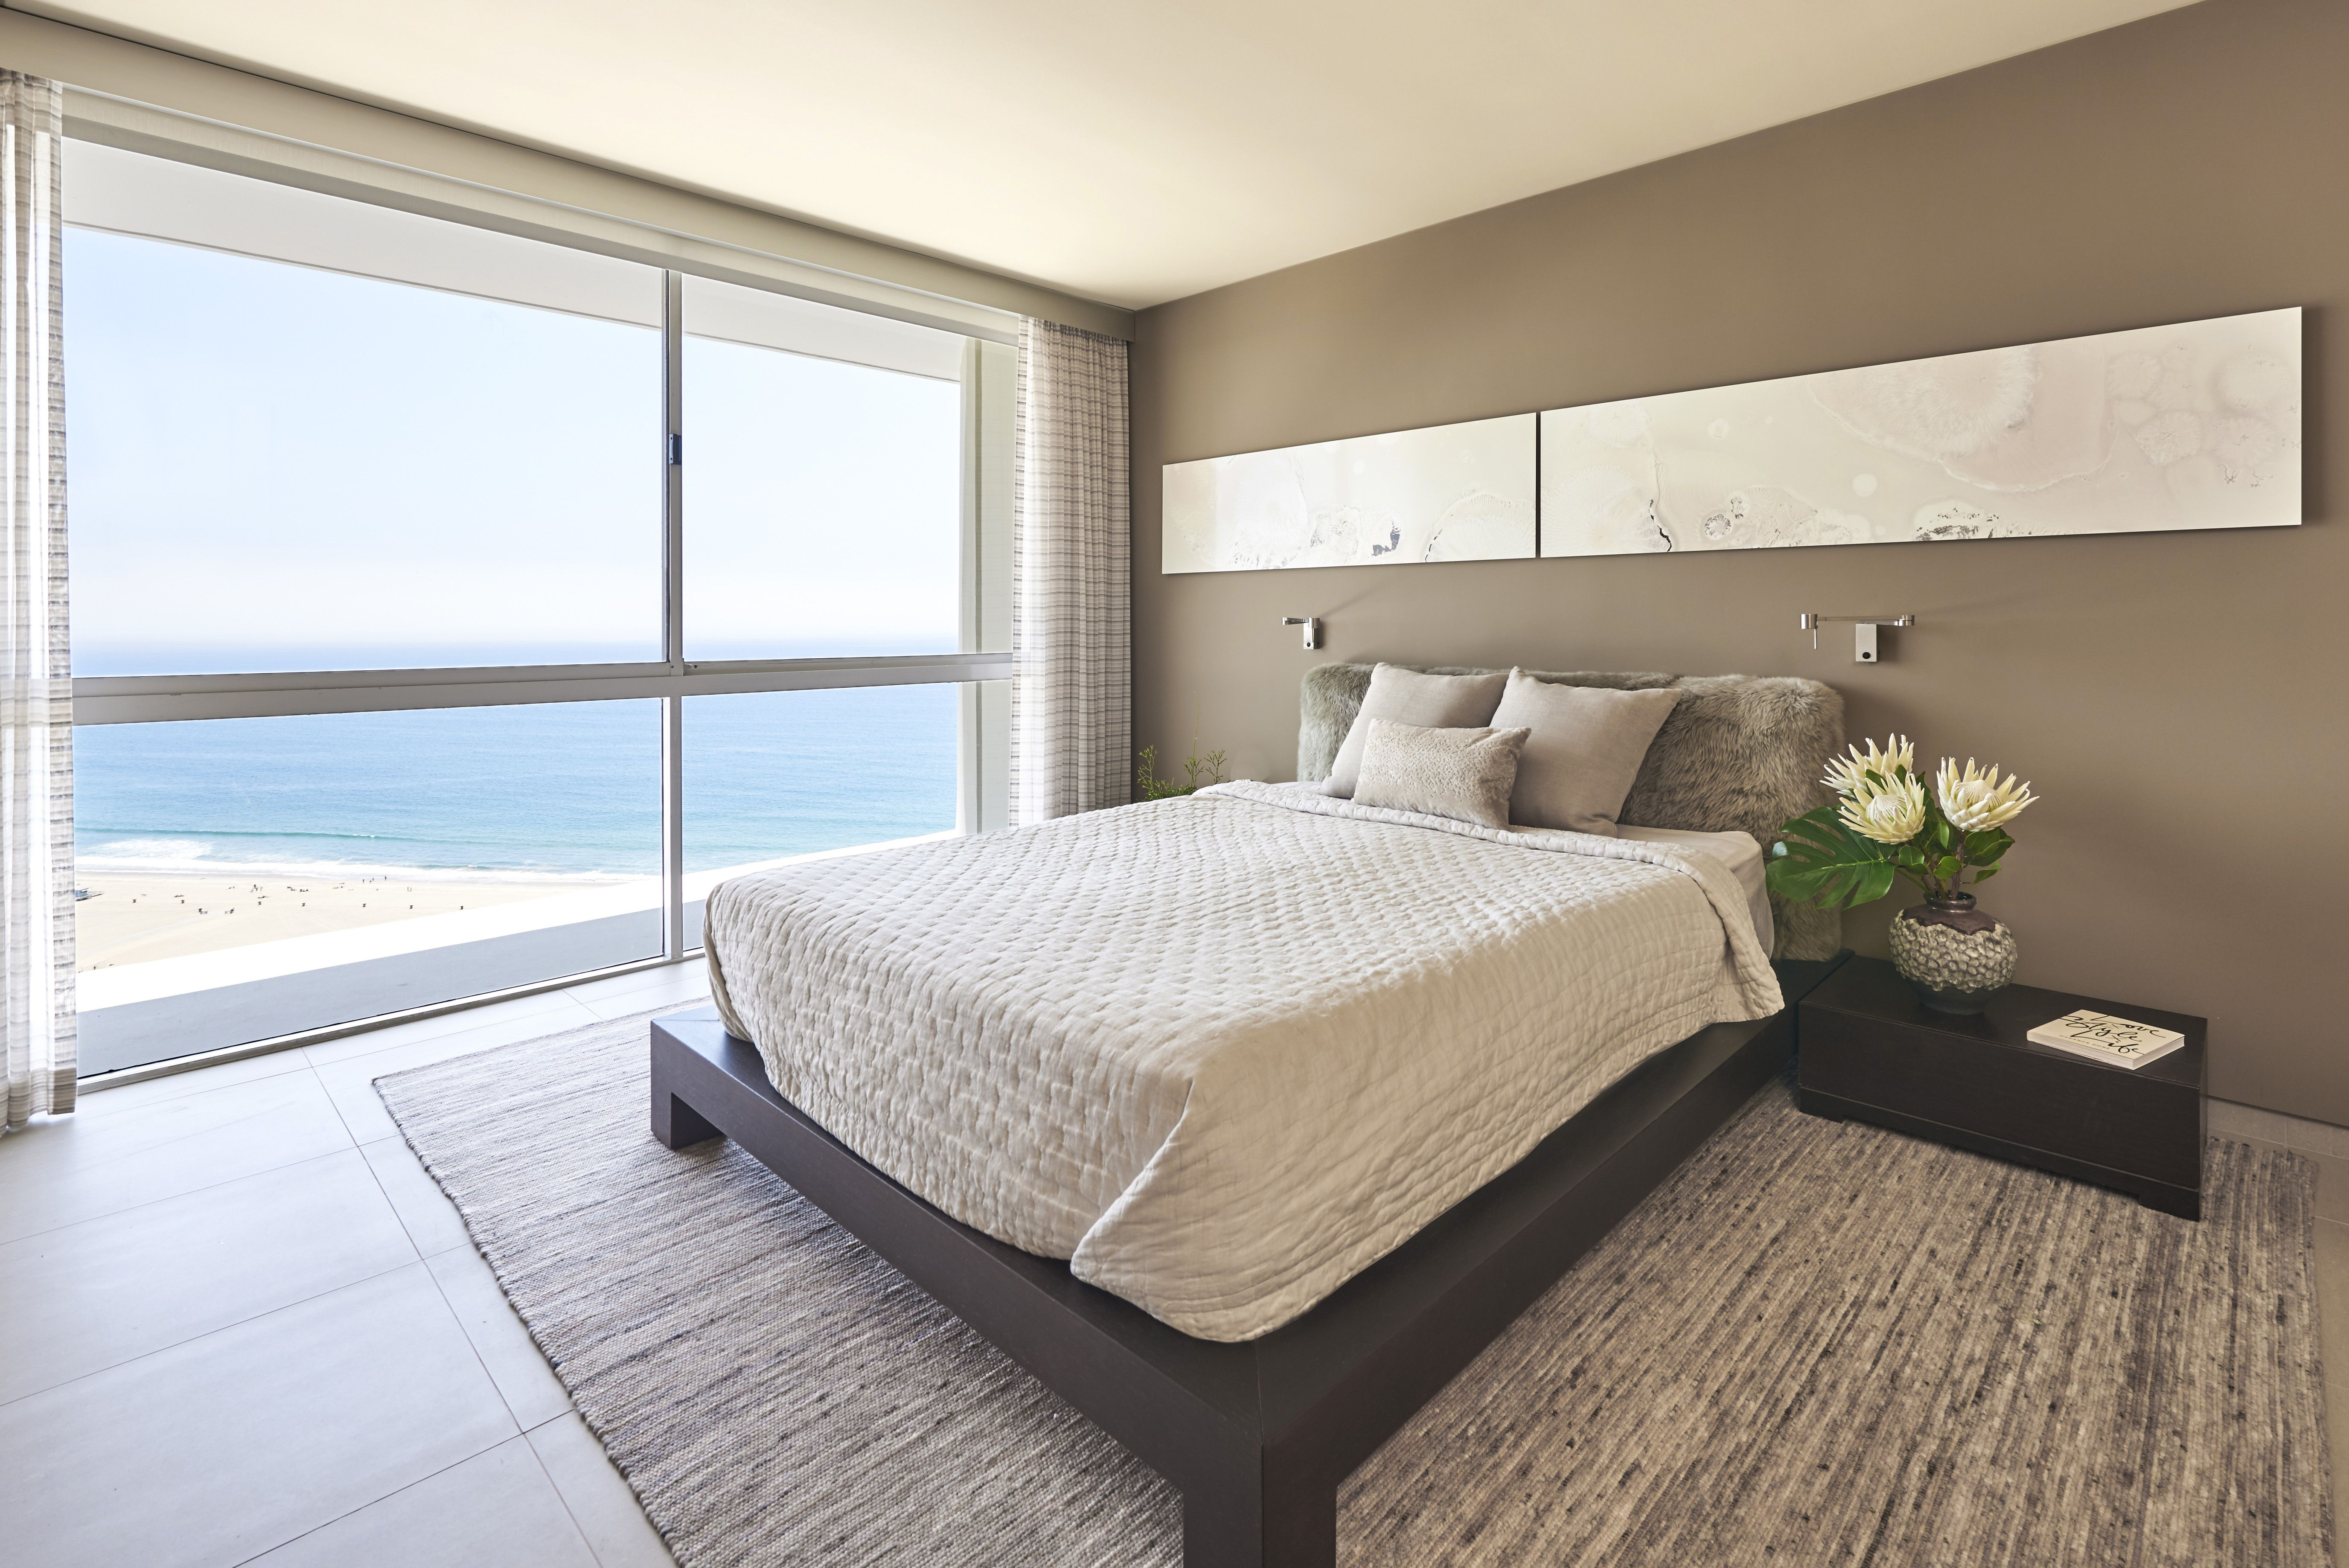 28 Sophisticated Bedrooms With Low Platform Beds Low Platform Bed Ideas